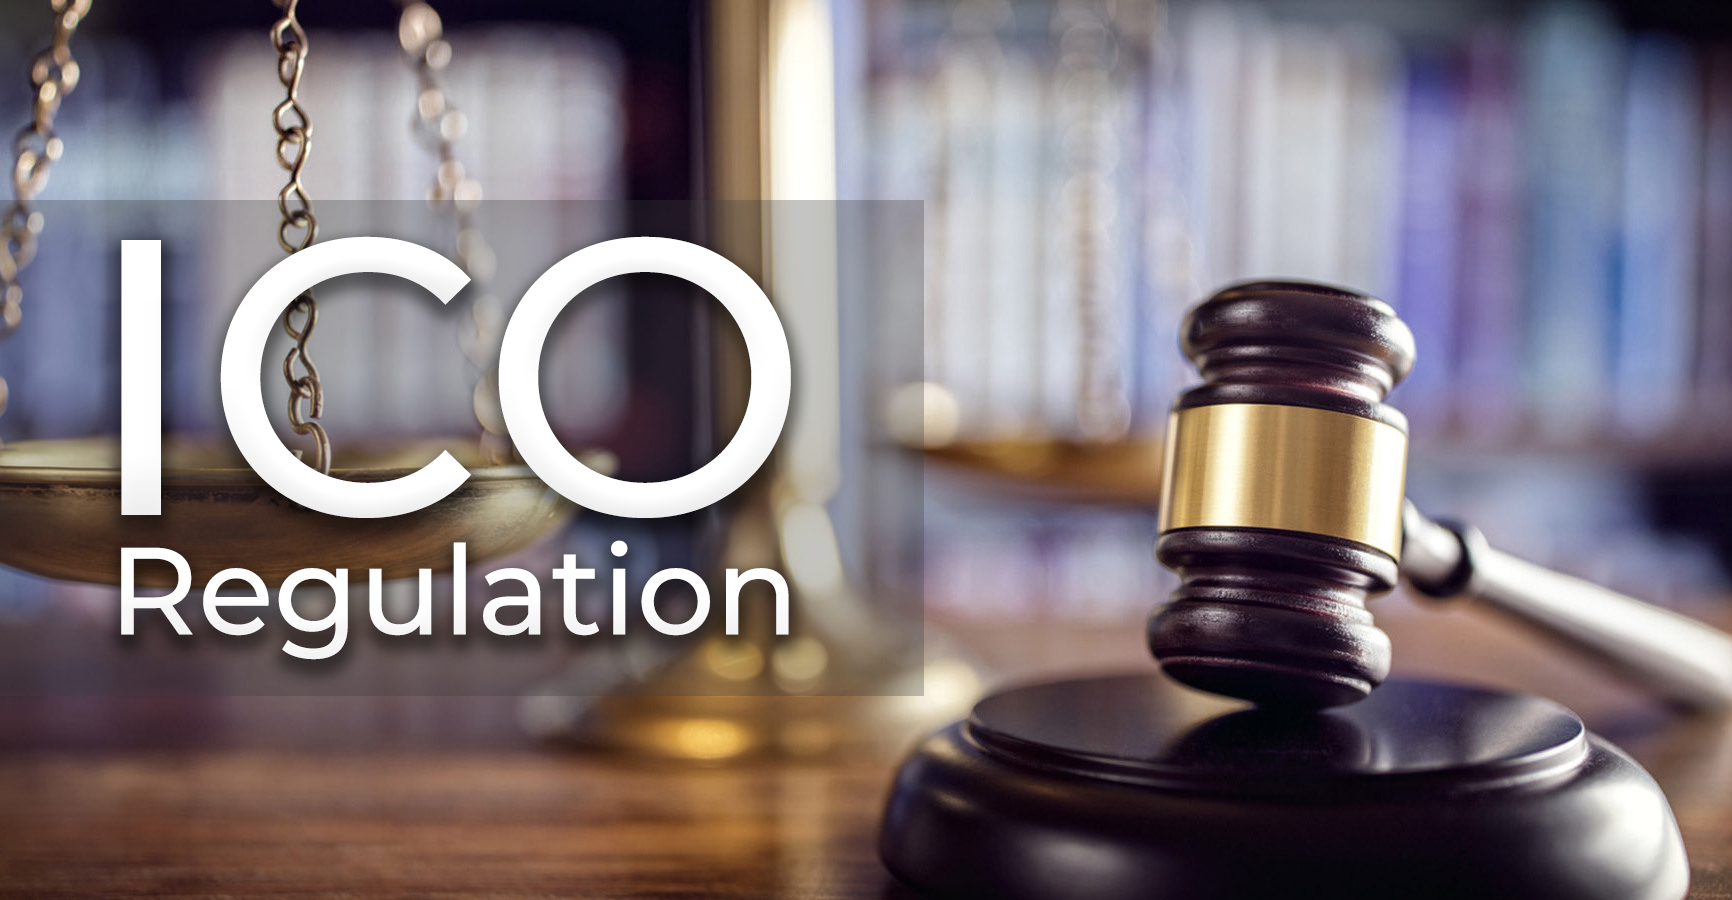 ico regulation